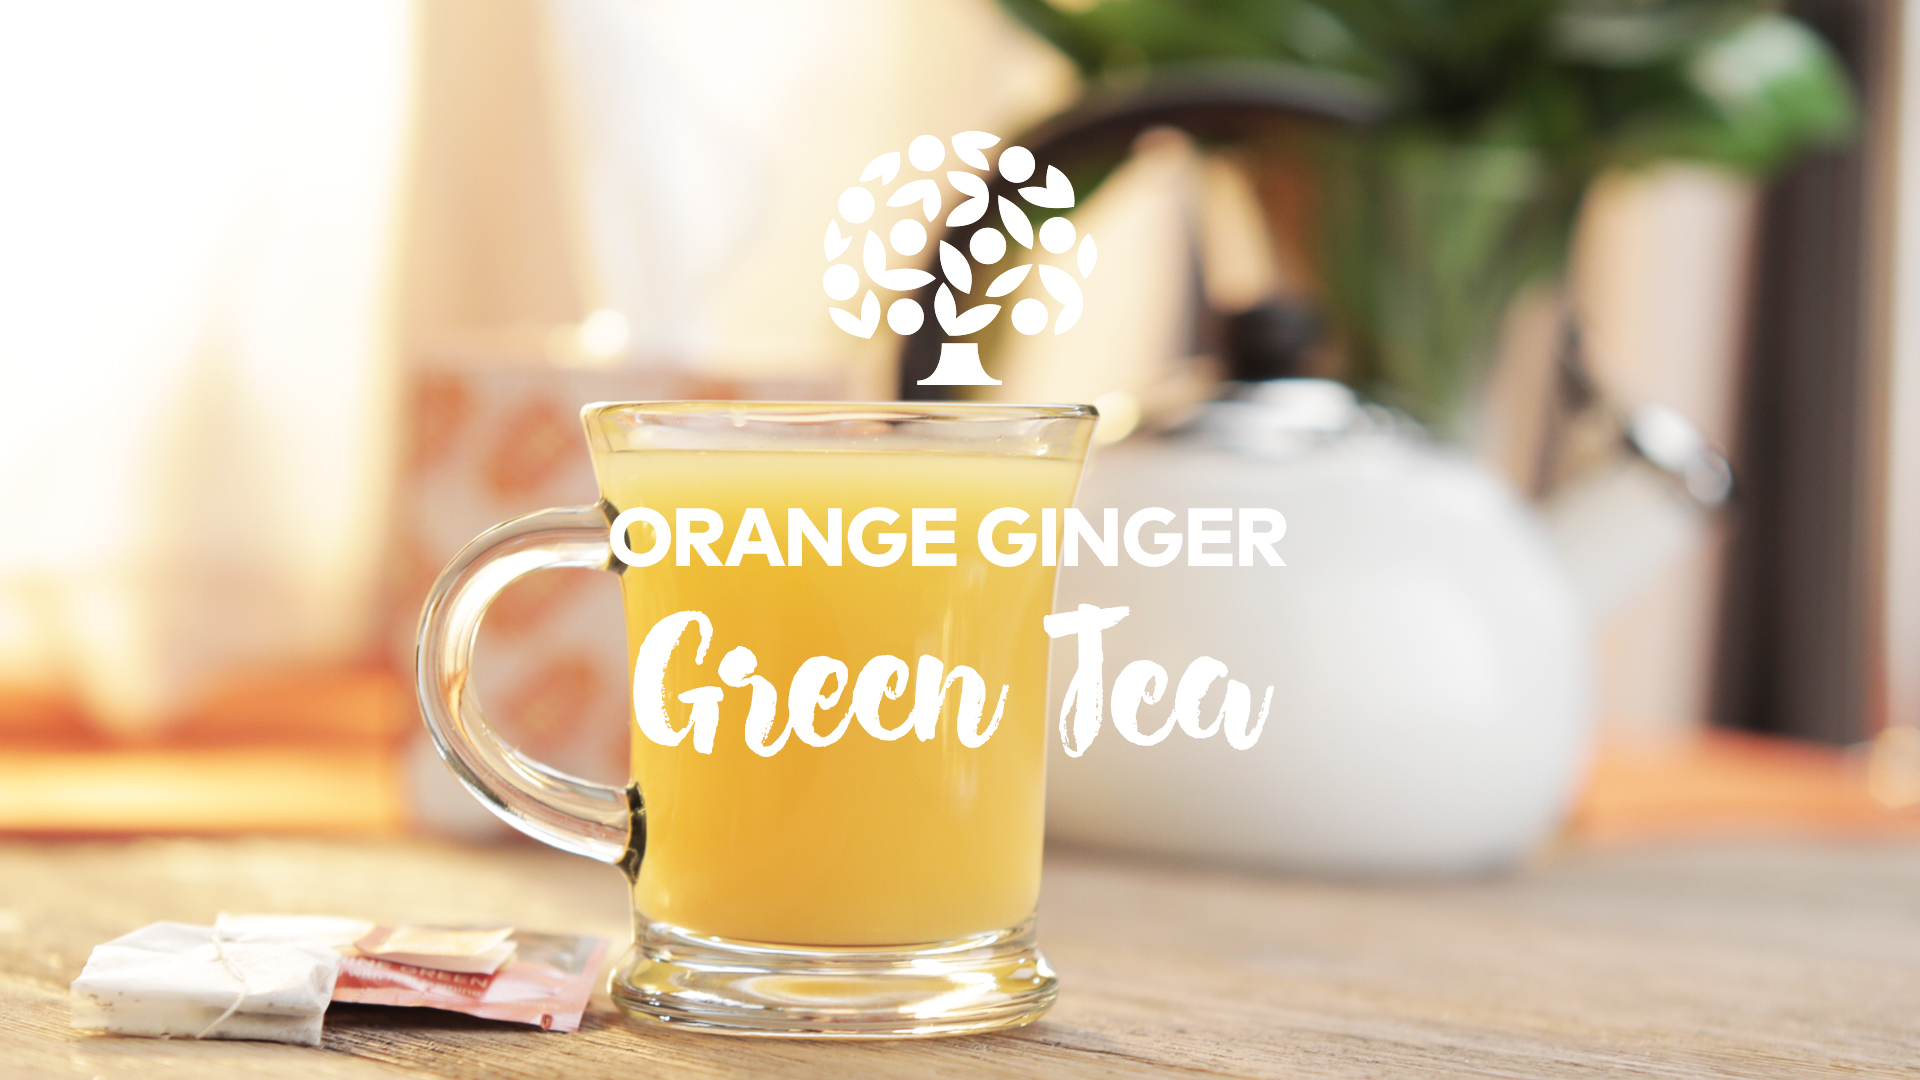 orange ginger green tea in a clear glass mug on a table